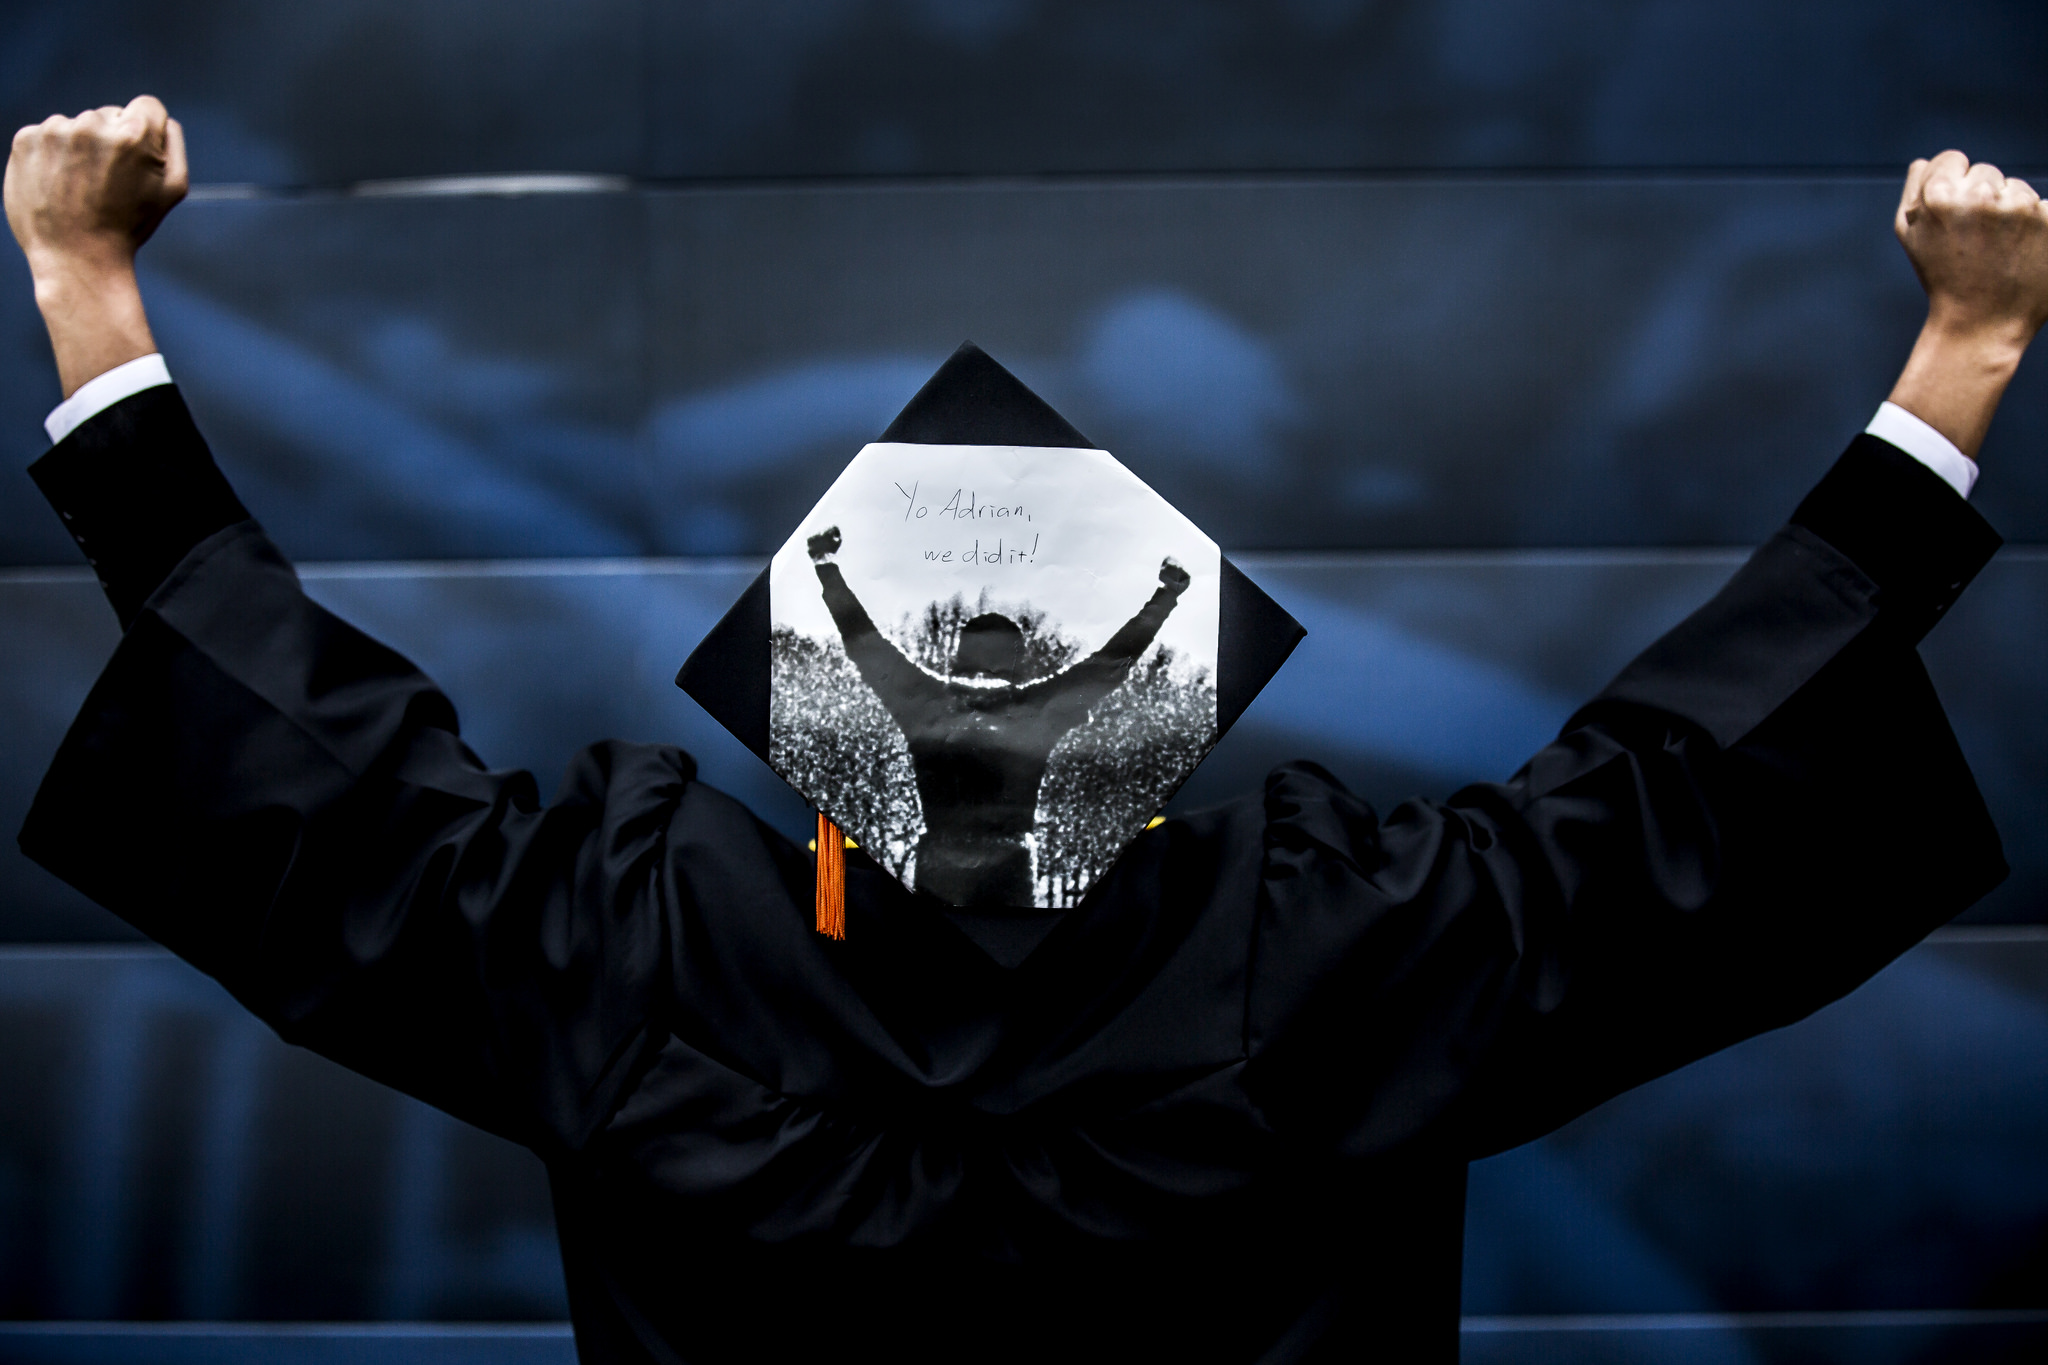 A photograph of a student in his cap and gown immitating the victory pose of Rocky Balboa visible on his cap.